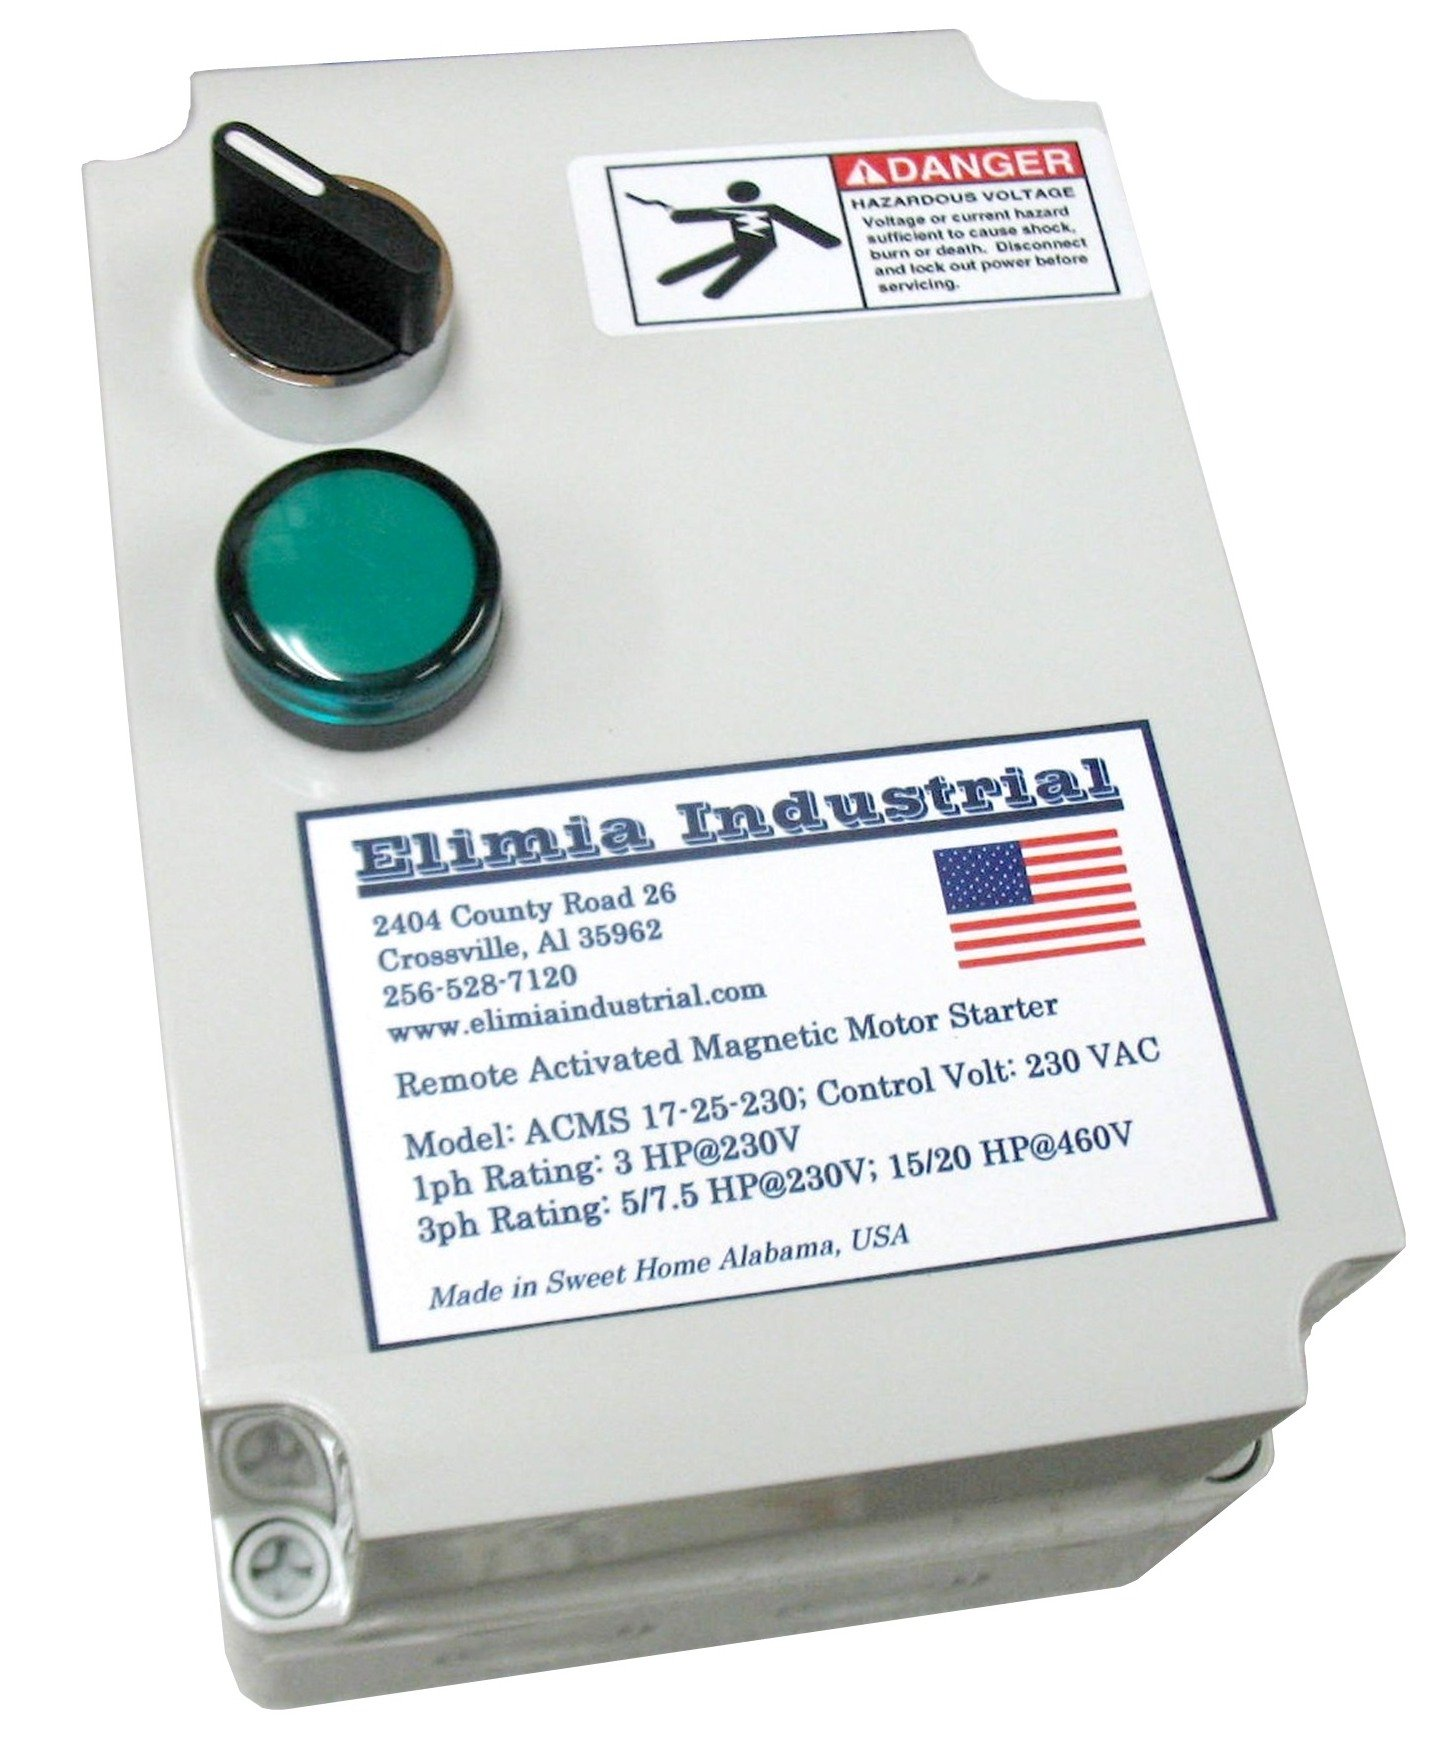 Elimia Air Compressor Motor Starter, Three Phase, 10 HP, 230V, Nema 4X, 23-32 Amp Overload, Made in USA